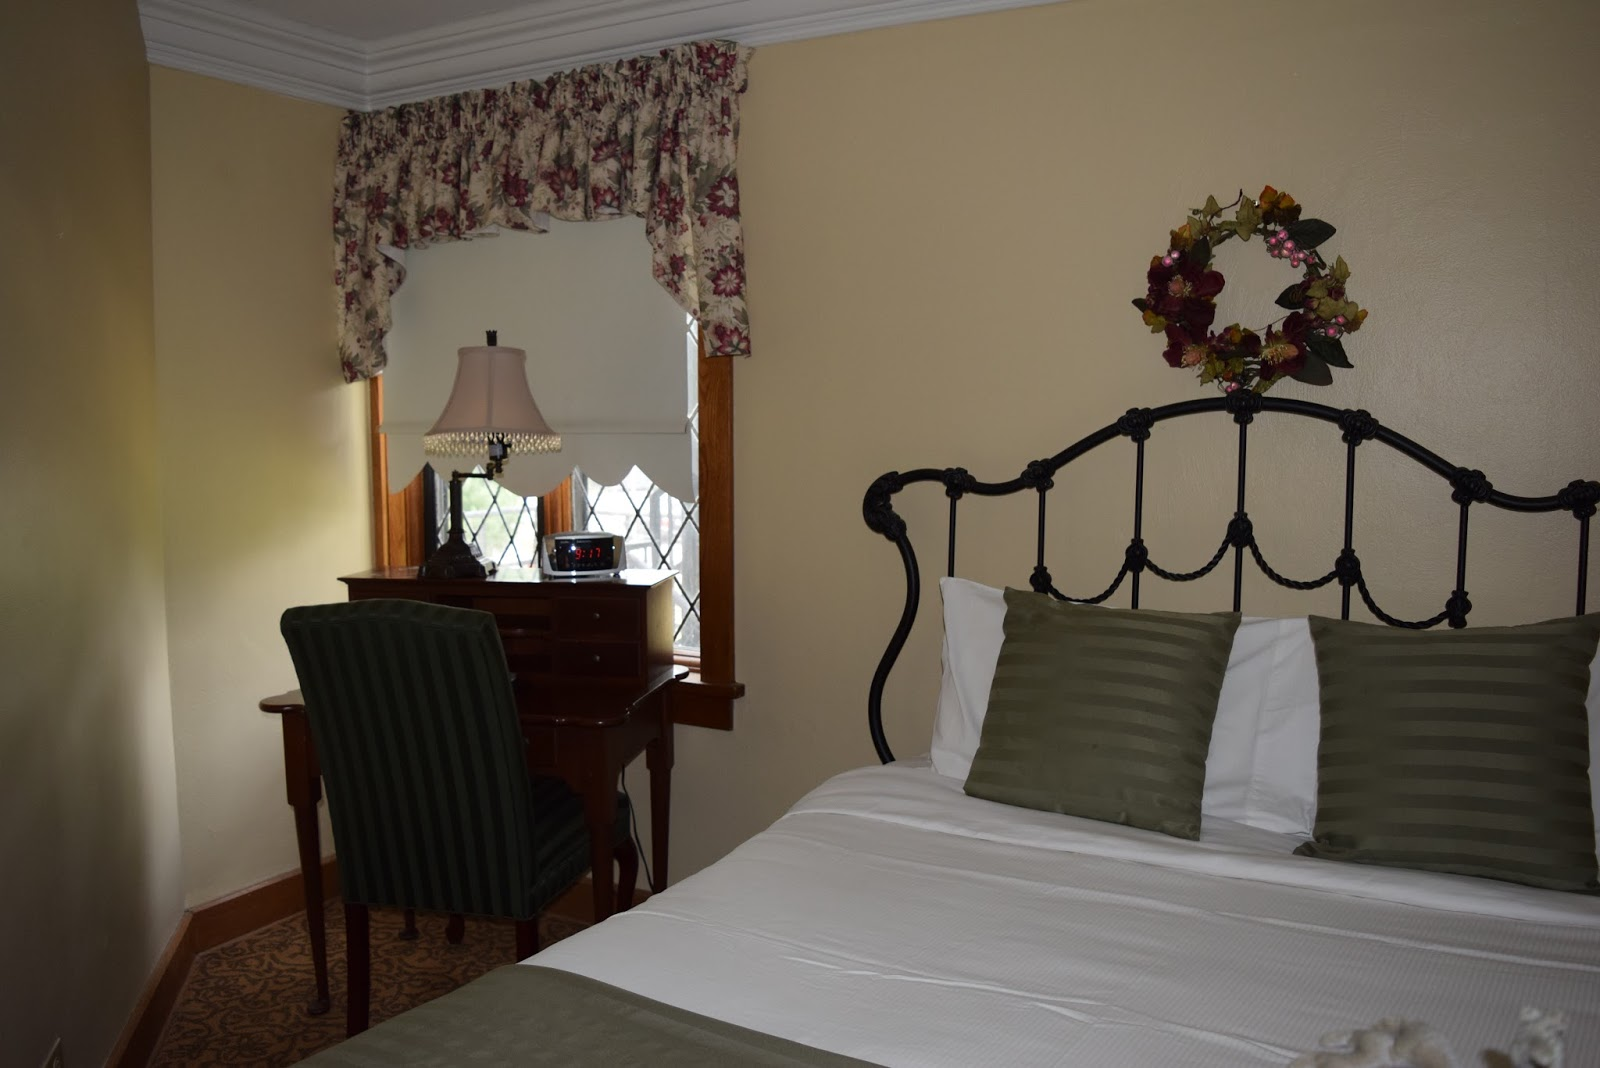 Ohio State Bedroom Decor Punderson Manor State Park Lodge Beauty And History In Geauga